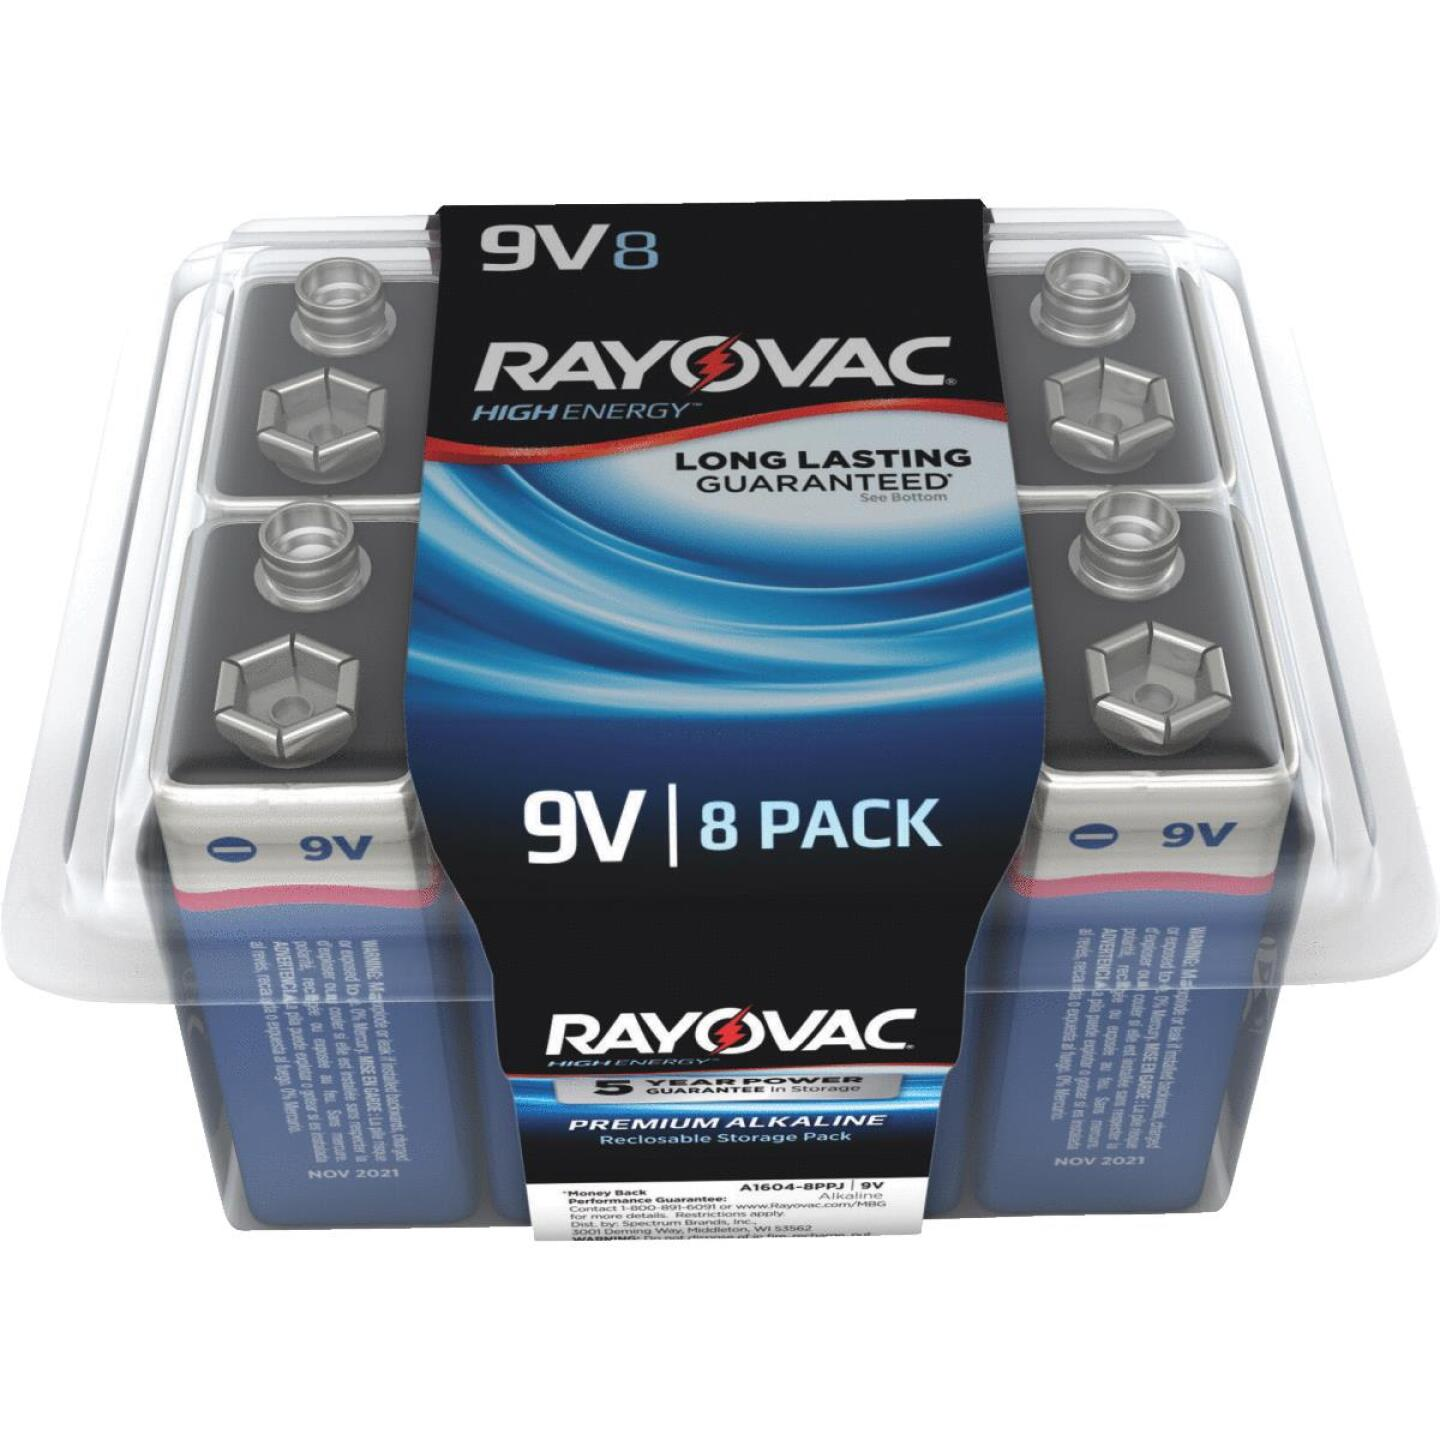 Rayovac High Energy 9V Alkaline Battery (8-Pack) Image 1